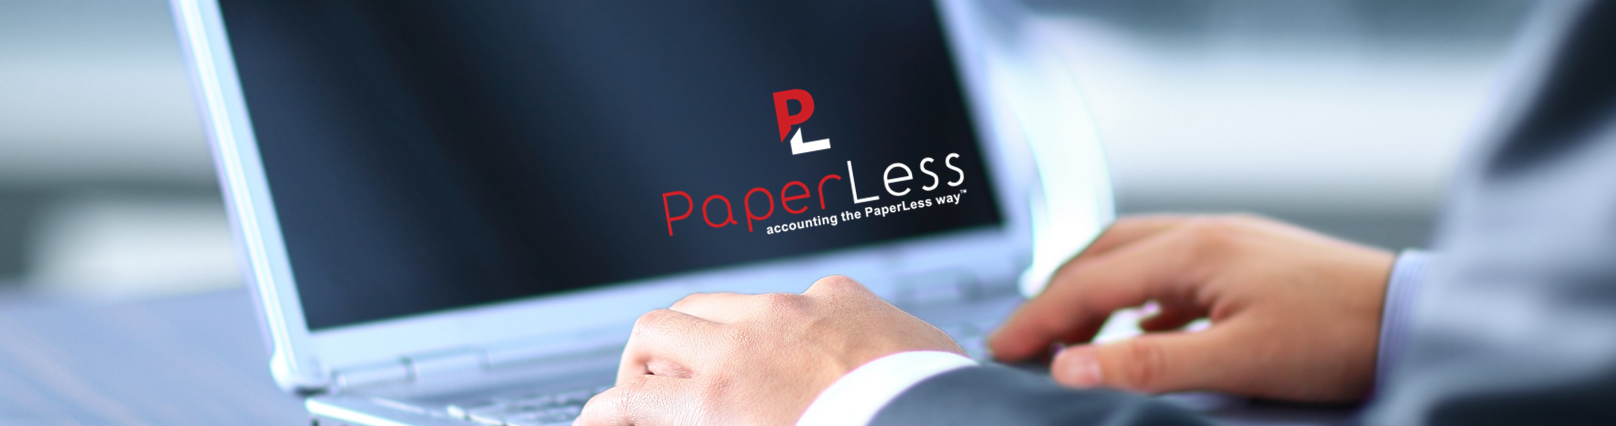 PaperLess Document Management Case Studies